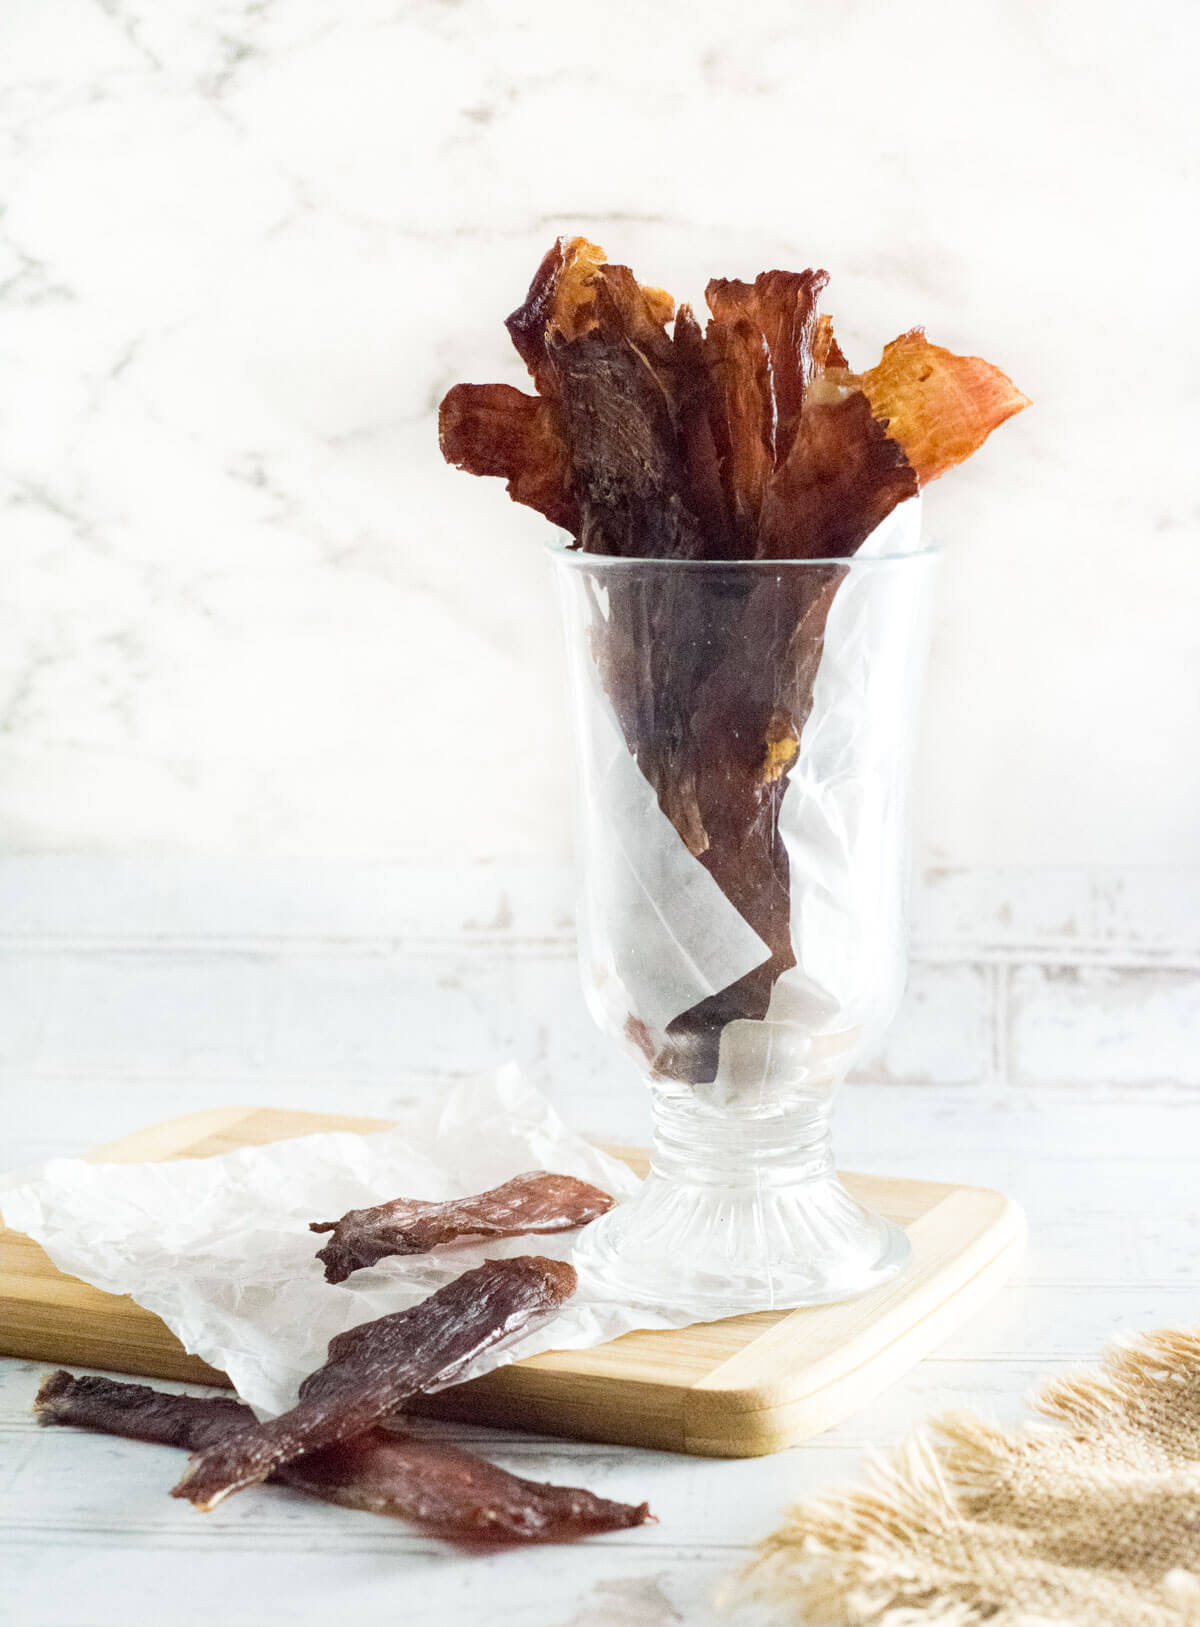 Sweet and spicy pork jerky served on table.